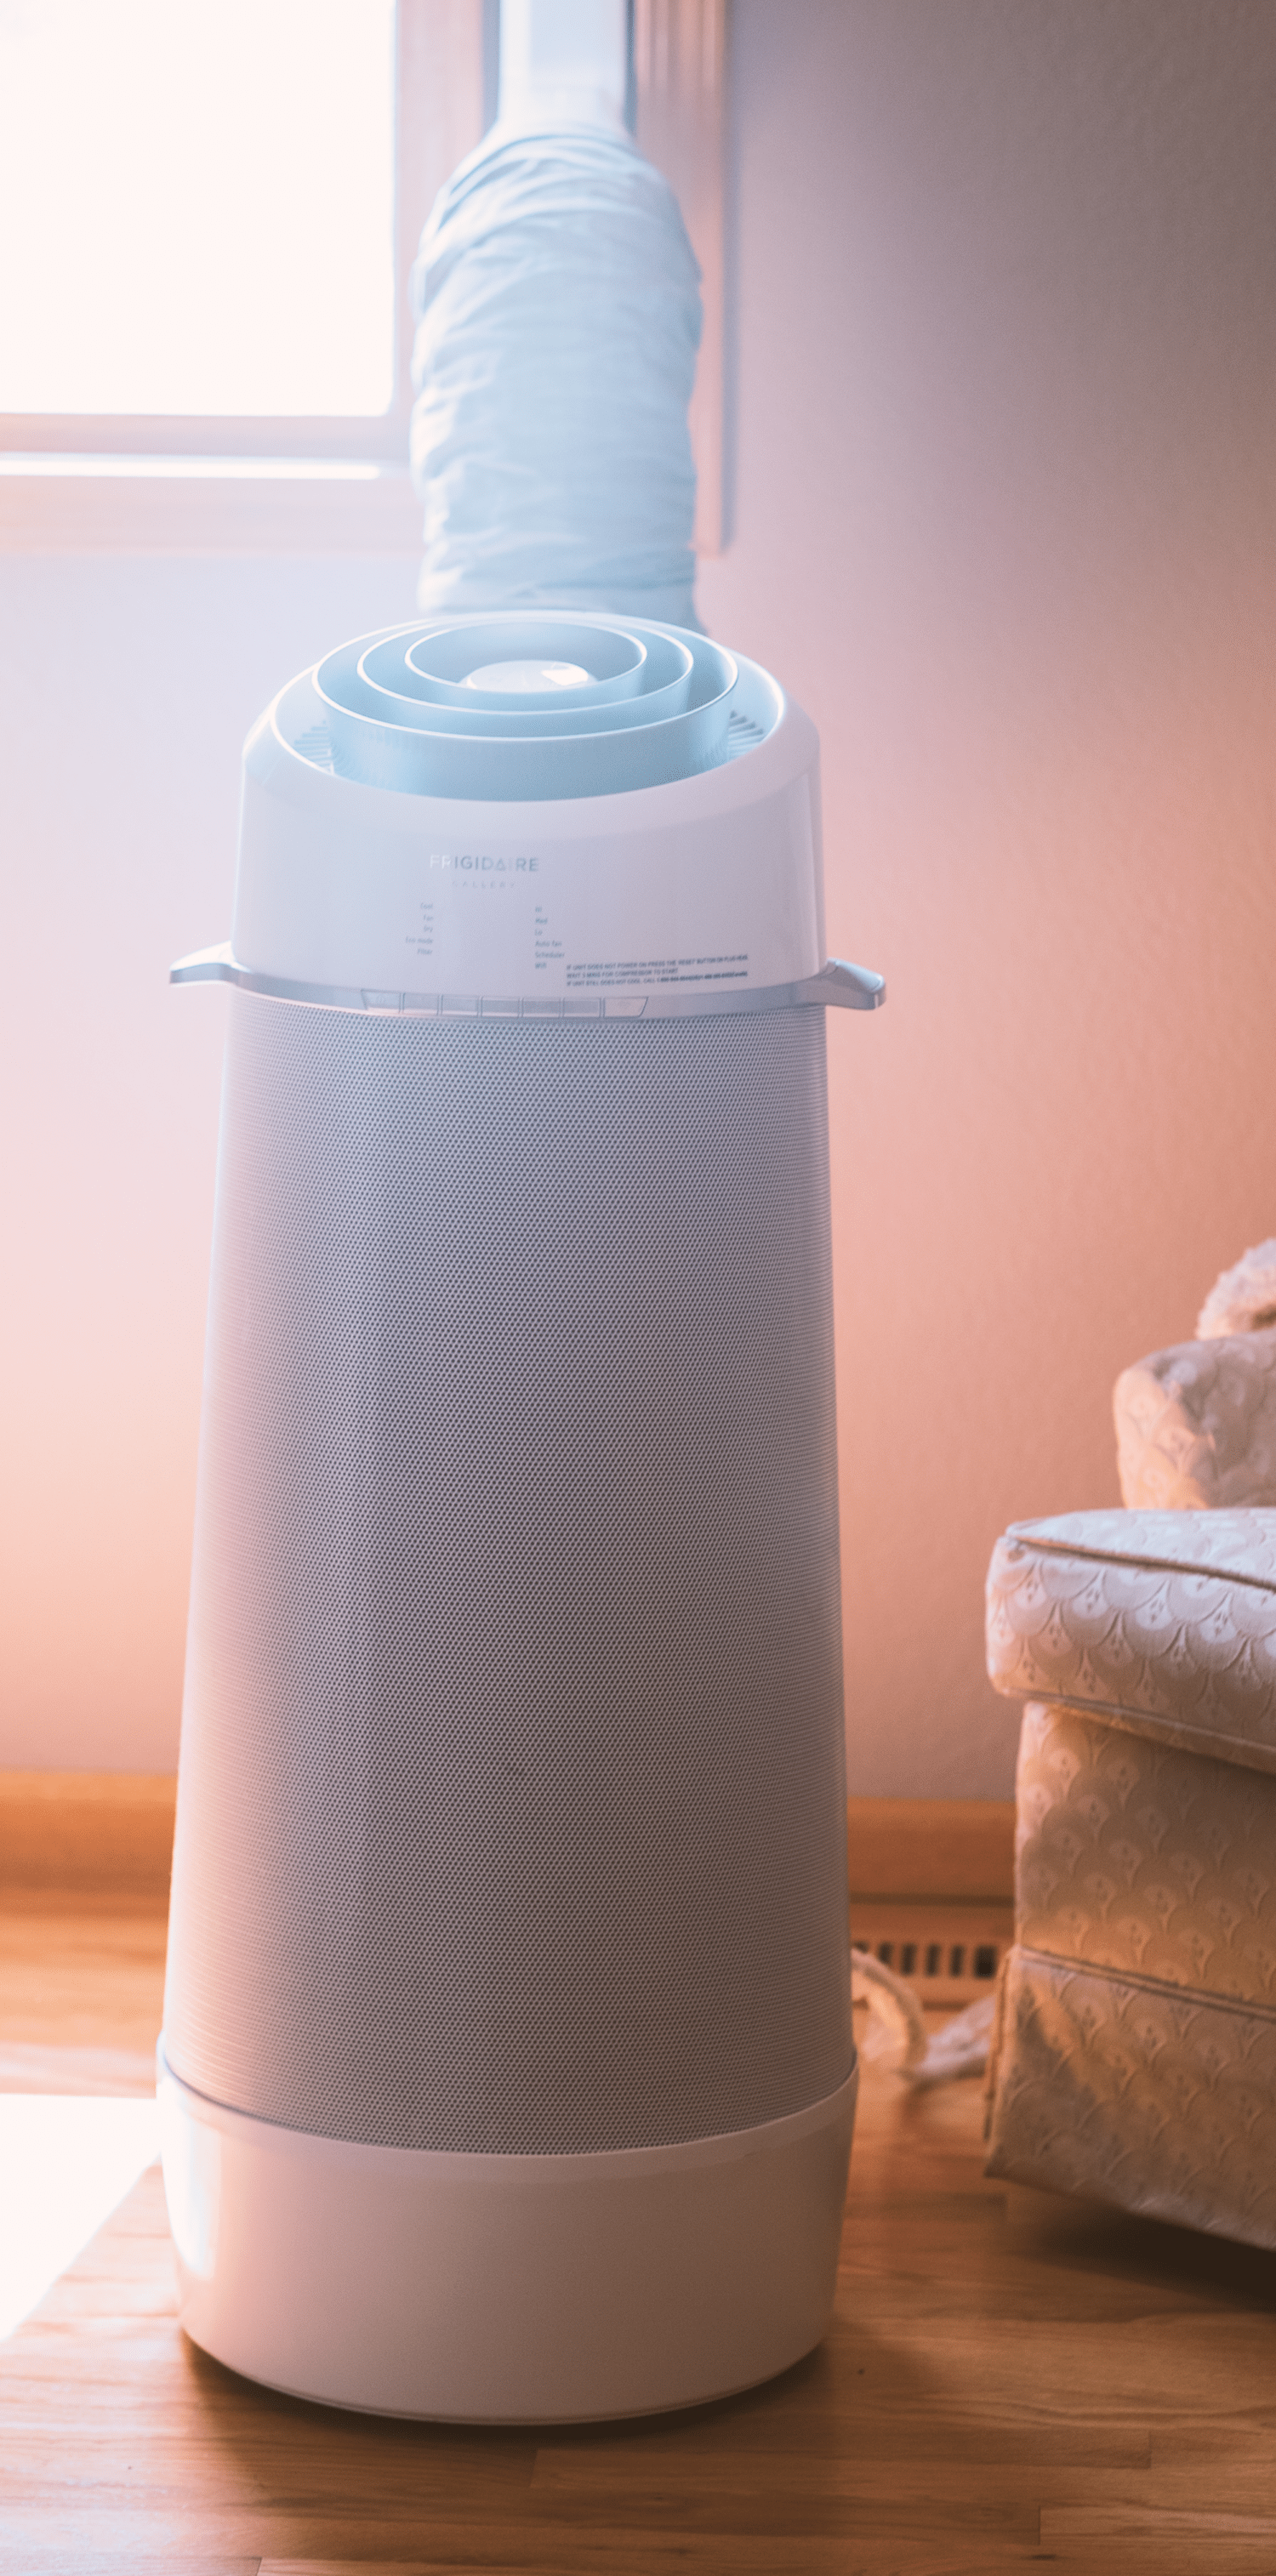 We Tested Frigidaire's Cool Connect Portable Air